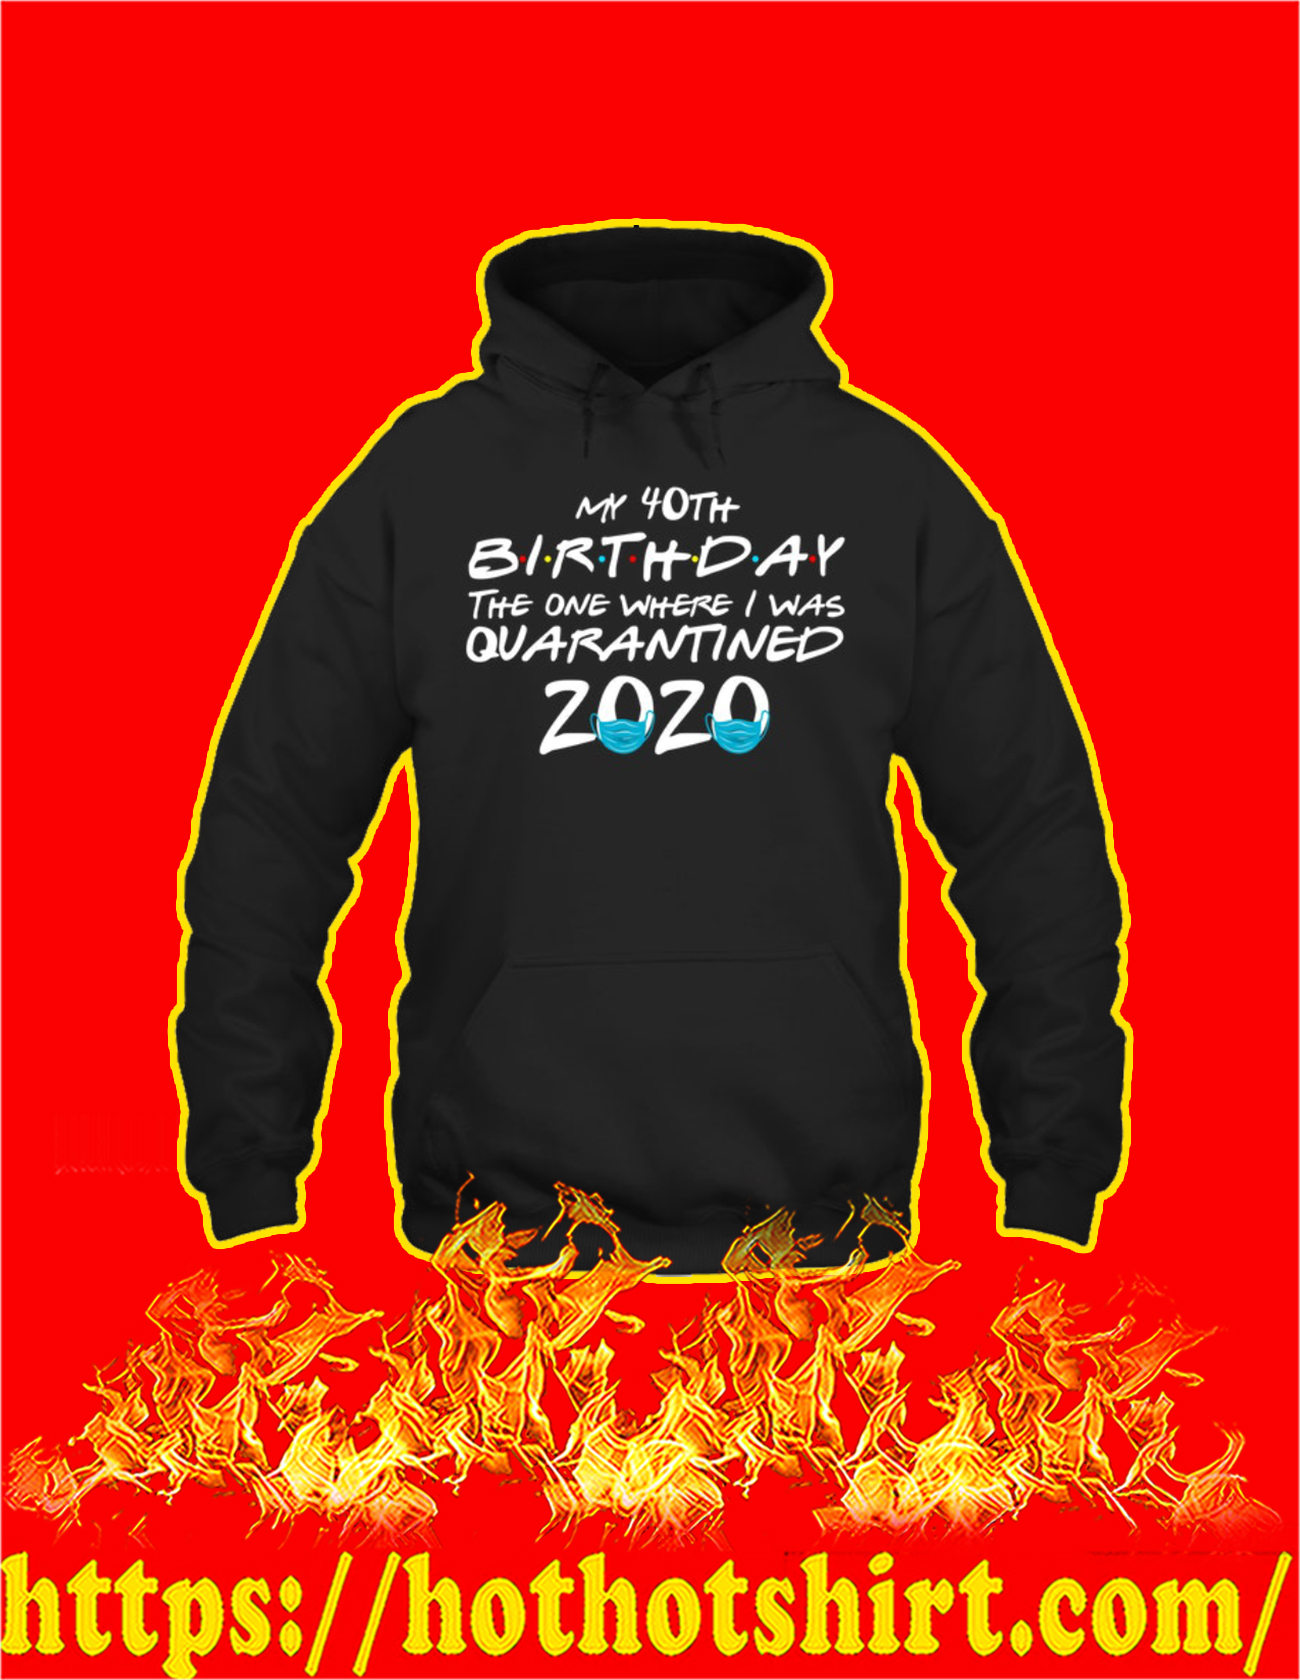 My 40th birthday the one where I was quarantined 2020 Hoodie